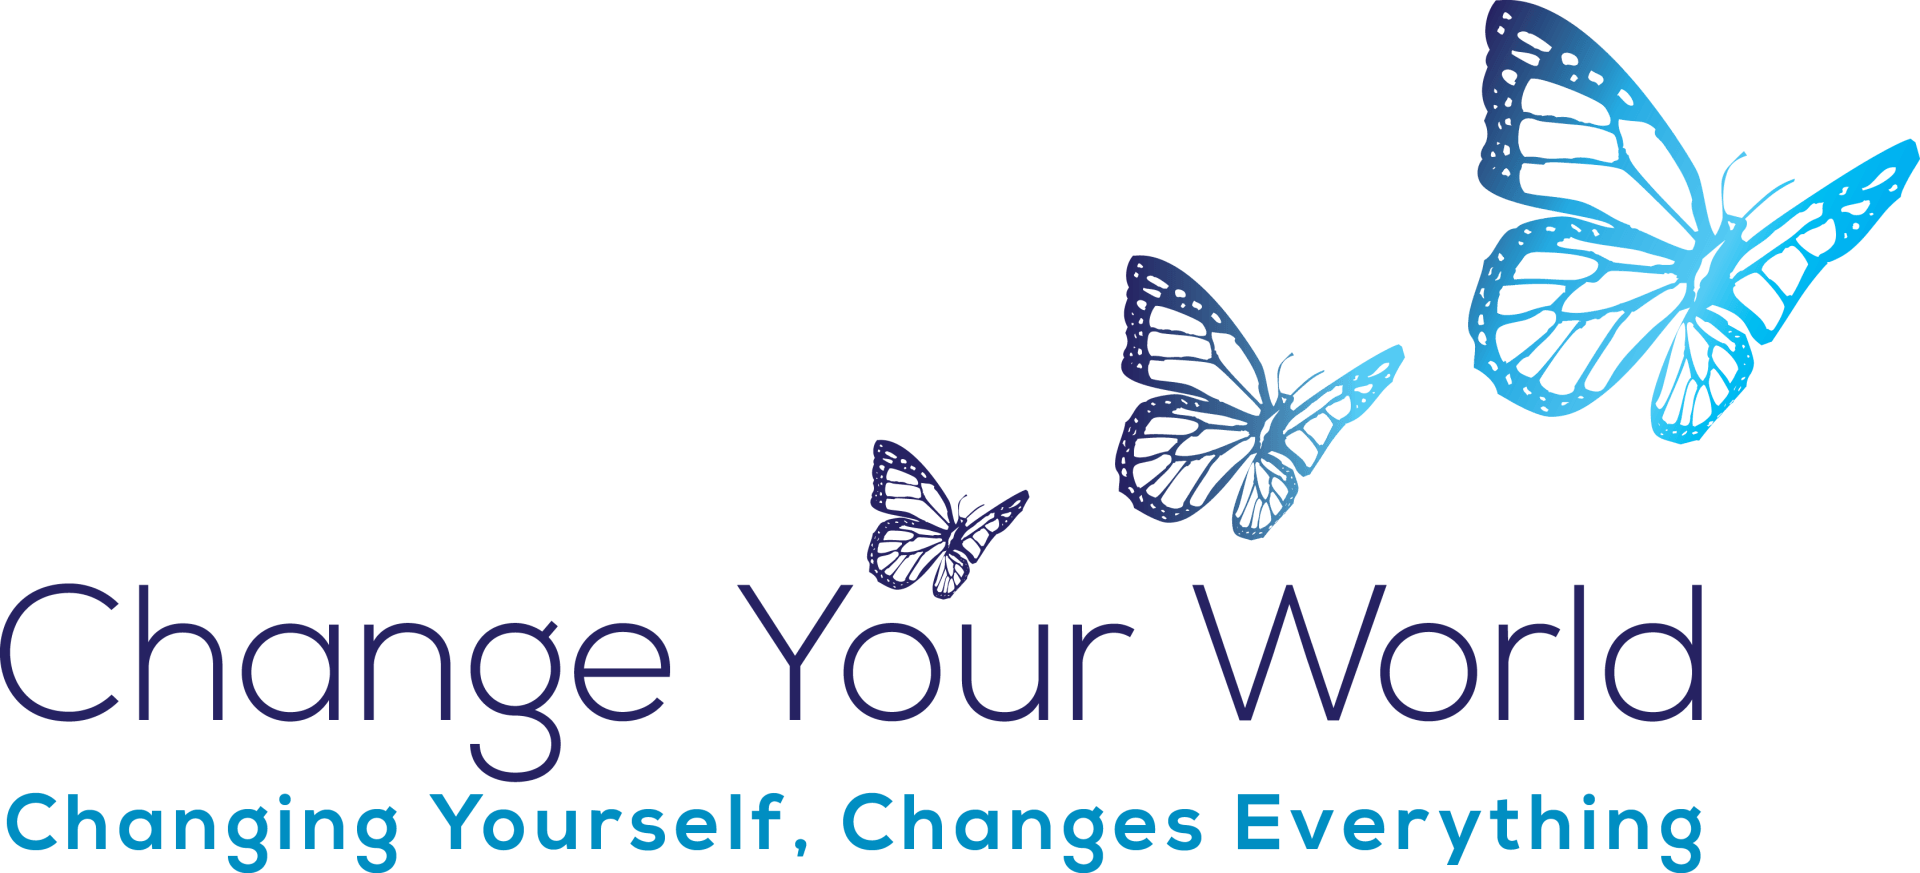 change your world events and speakers